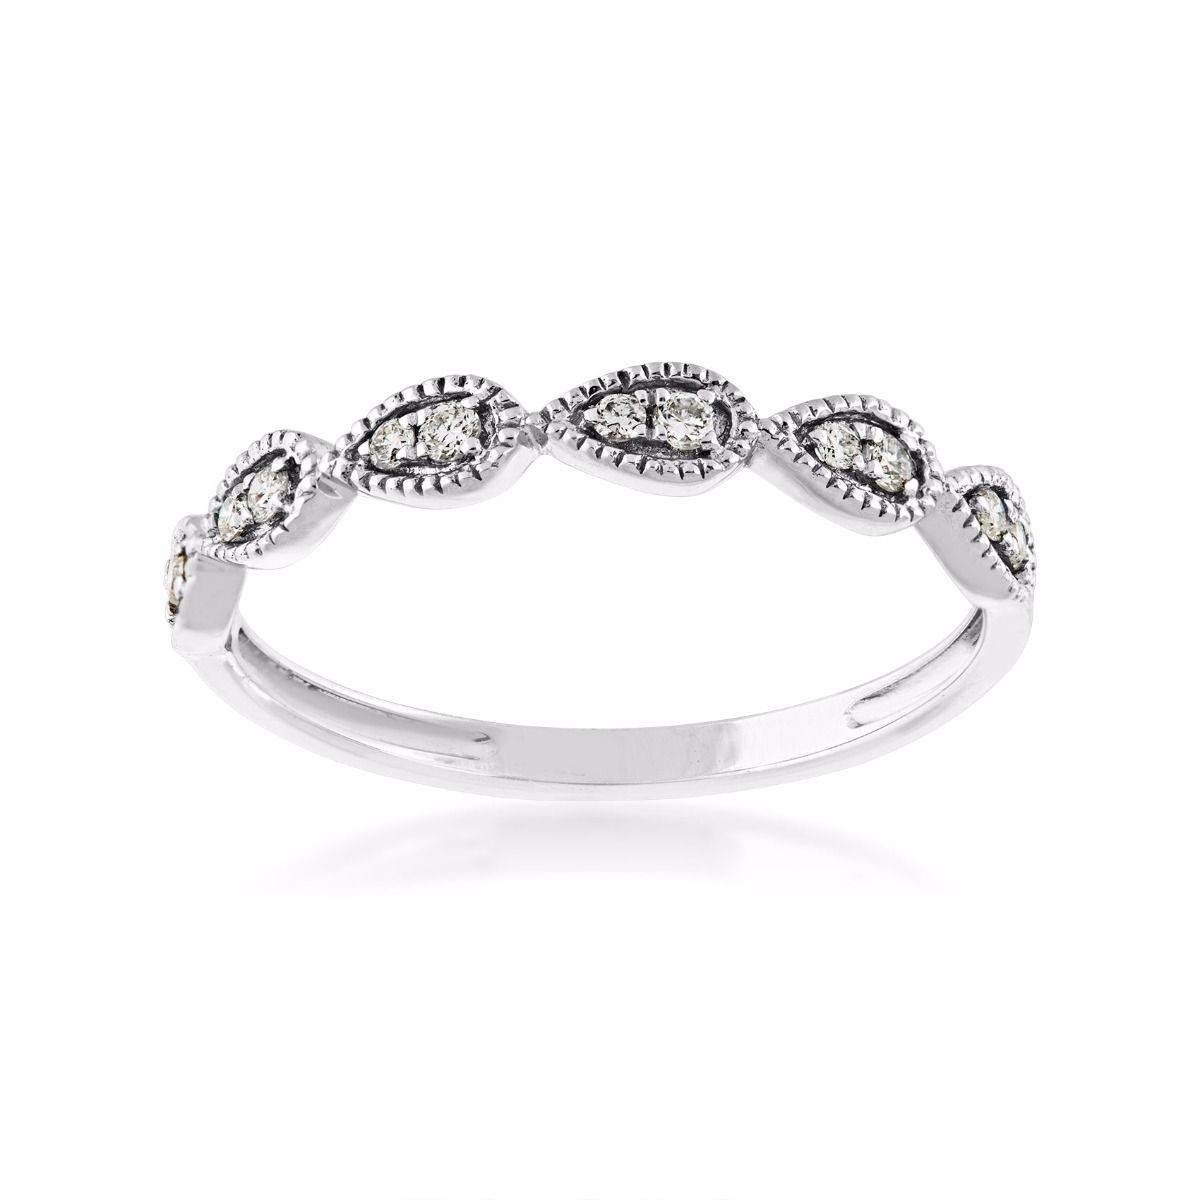 Perfect Match Stackable Diamond Anniversary Ring In 10 Kt. White Regarding 2017 Stackable Anniversary Rings (Gallery 13 of 25)